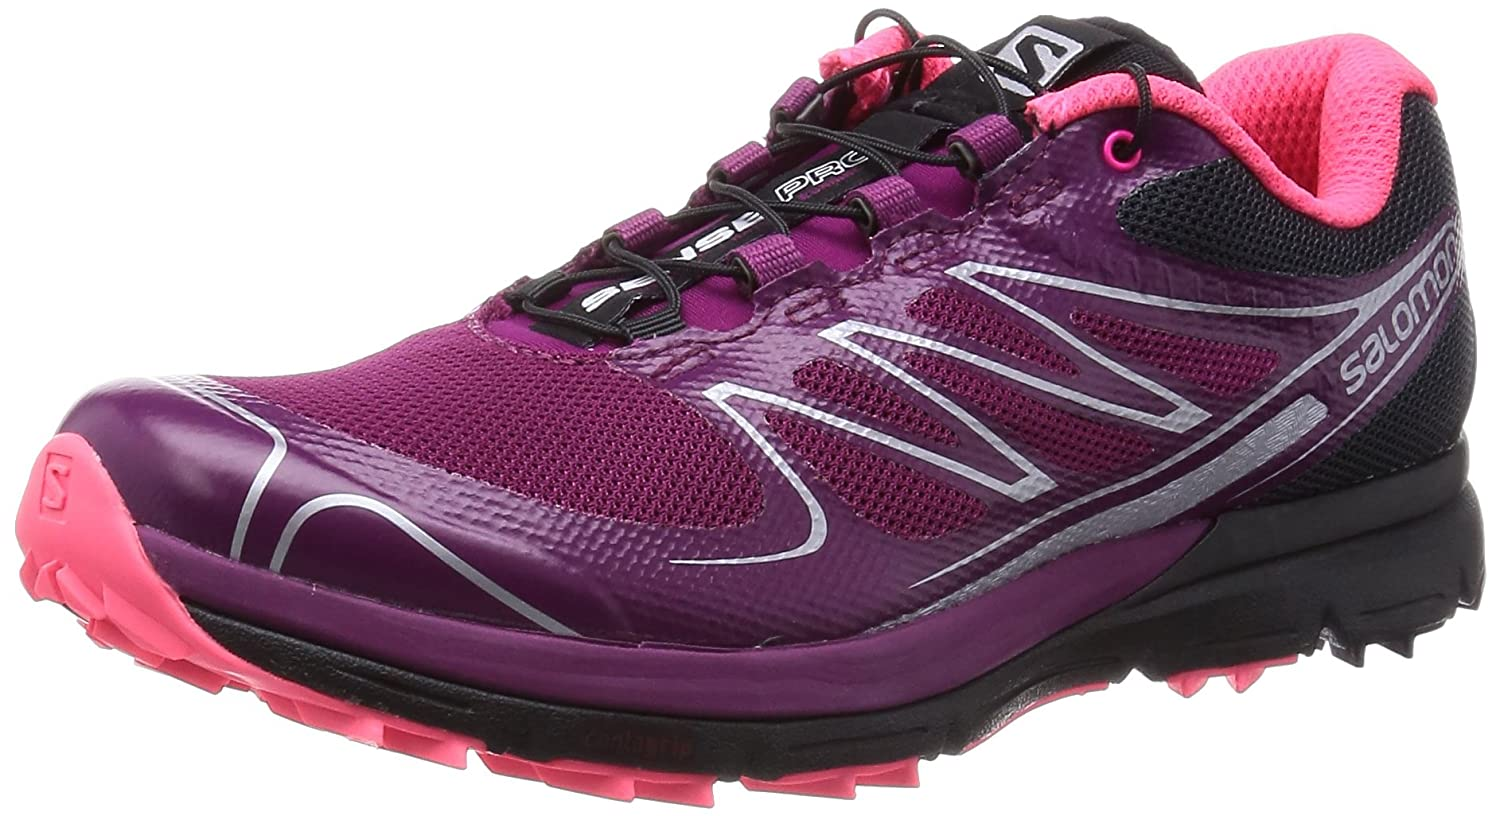 Salomon Women's Sense Pro Trail Running Shoes B00D3P9OFQ 9 B(M) US|Mystic Purple / Black / Pink